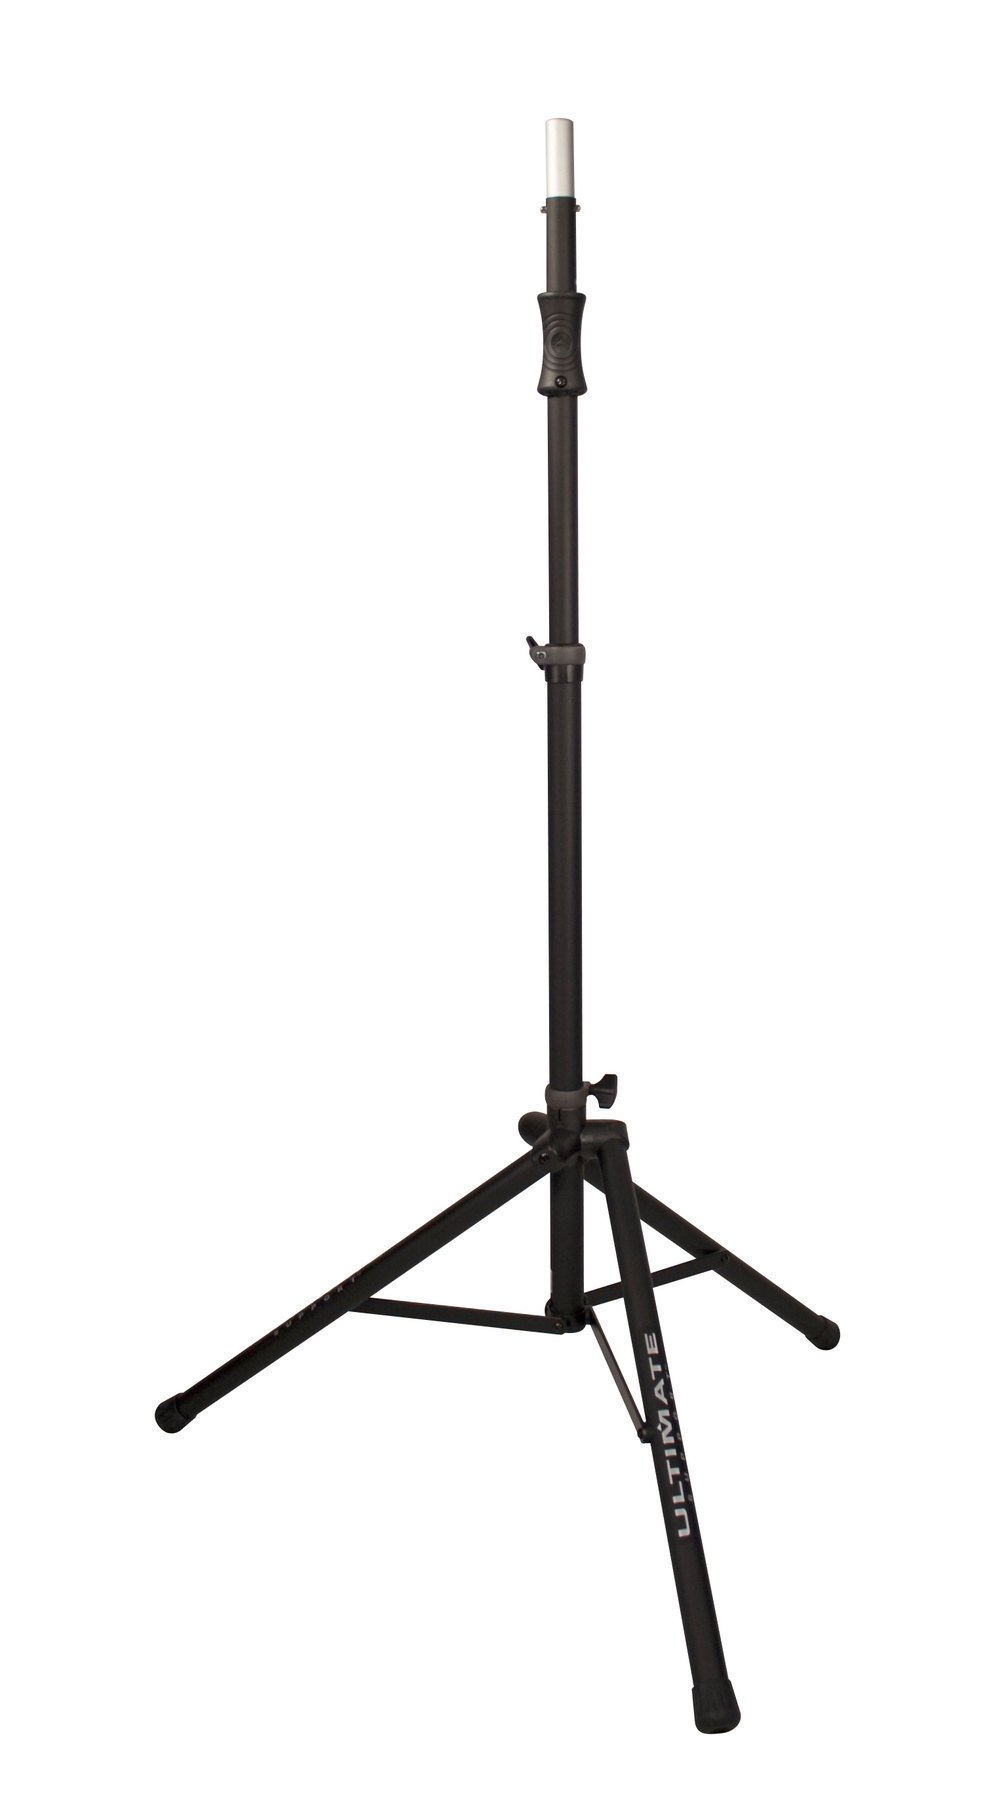 Ultimate Support TS-100B Air-Powered Series Lift-assist Aluminum Tripod Speaker Stand with Integrated Speaker Adapter by Ultimate Support